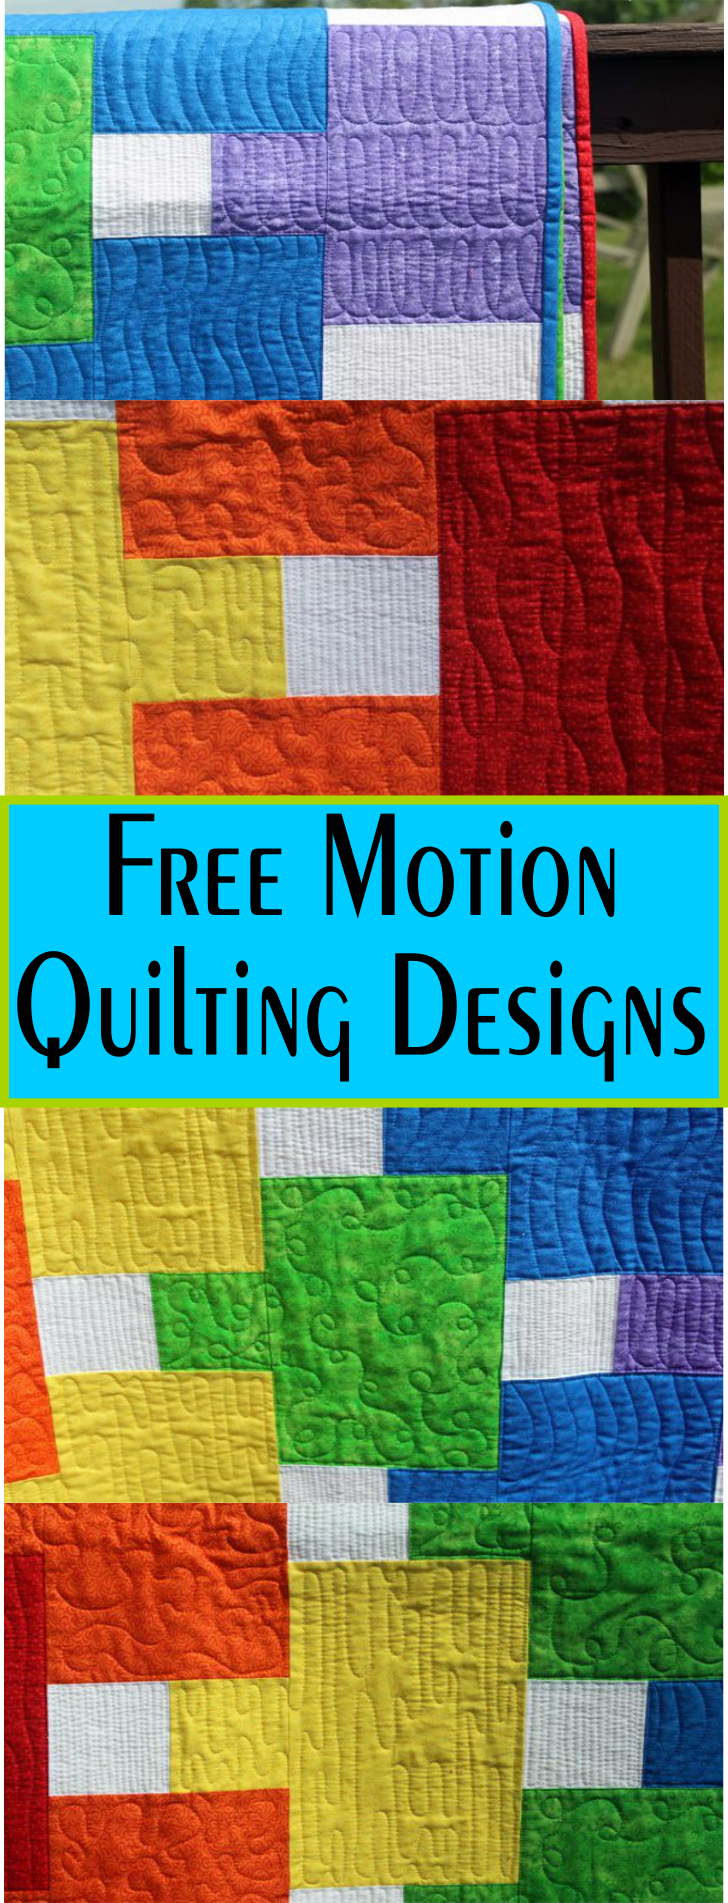 7 Free Motion Quilt Designs - Post Shows Detail Pics